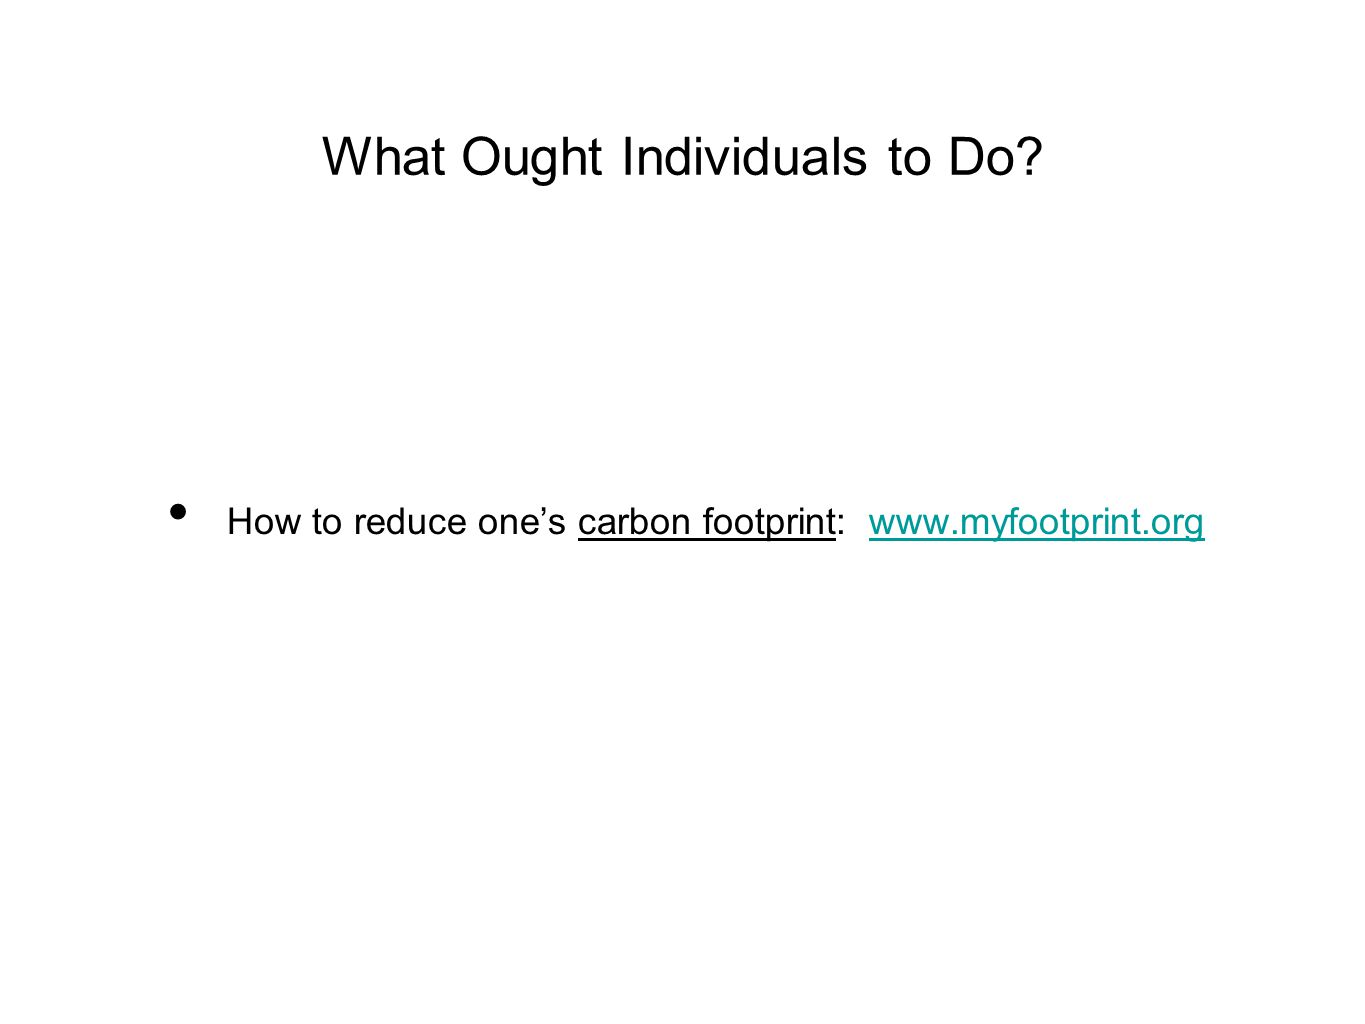 What Ought Individuals to Do.